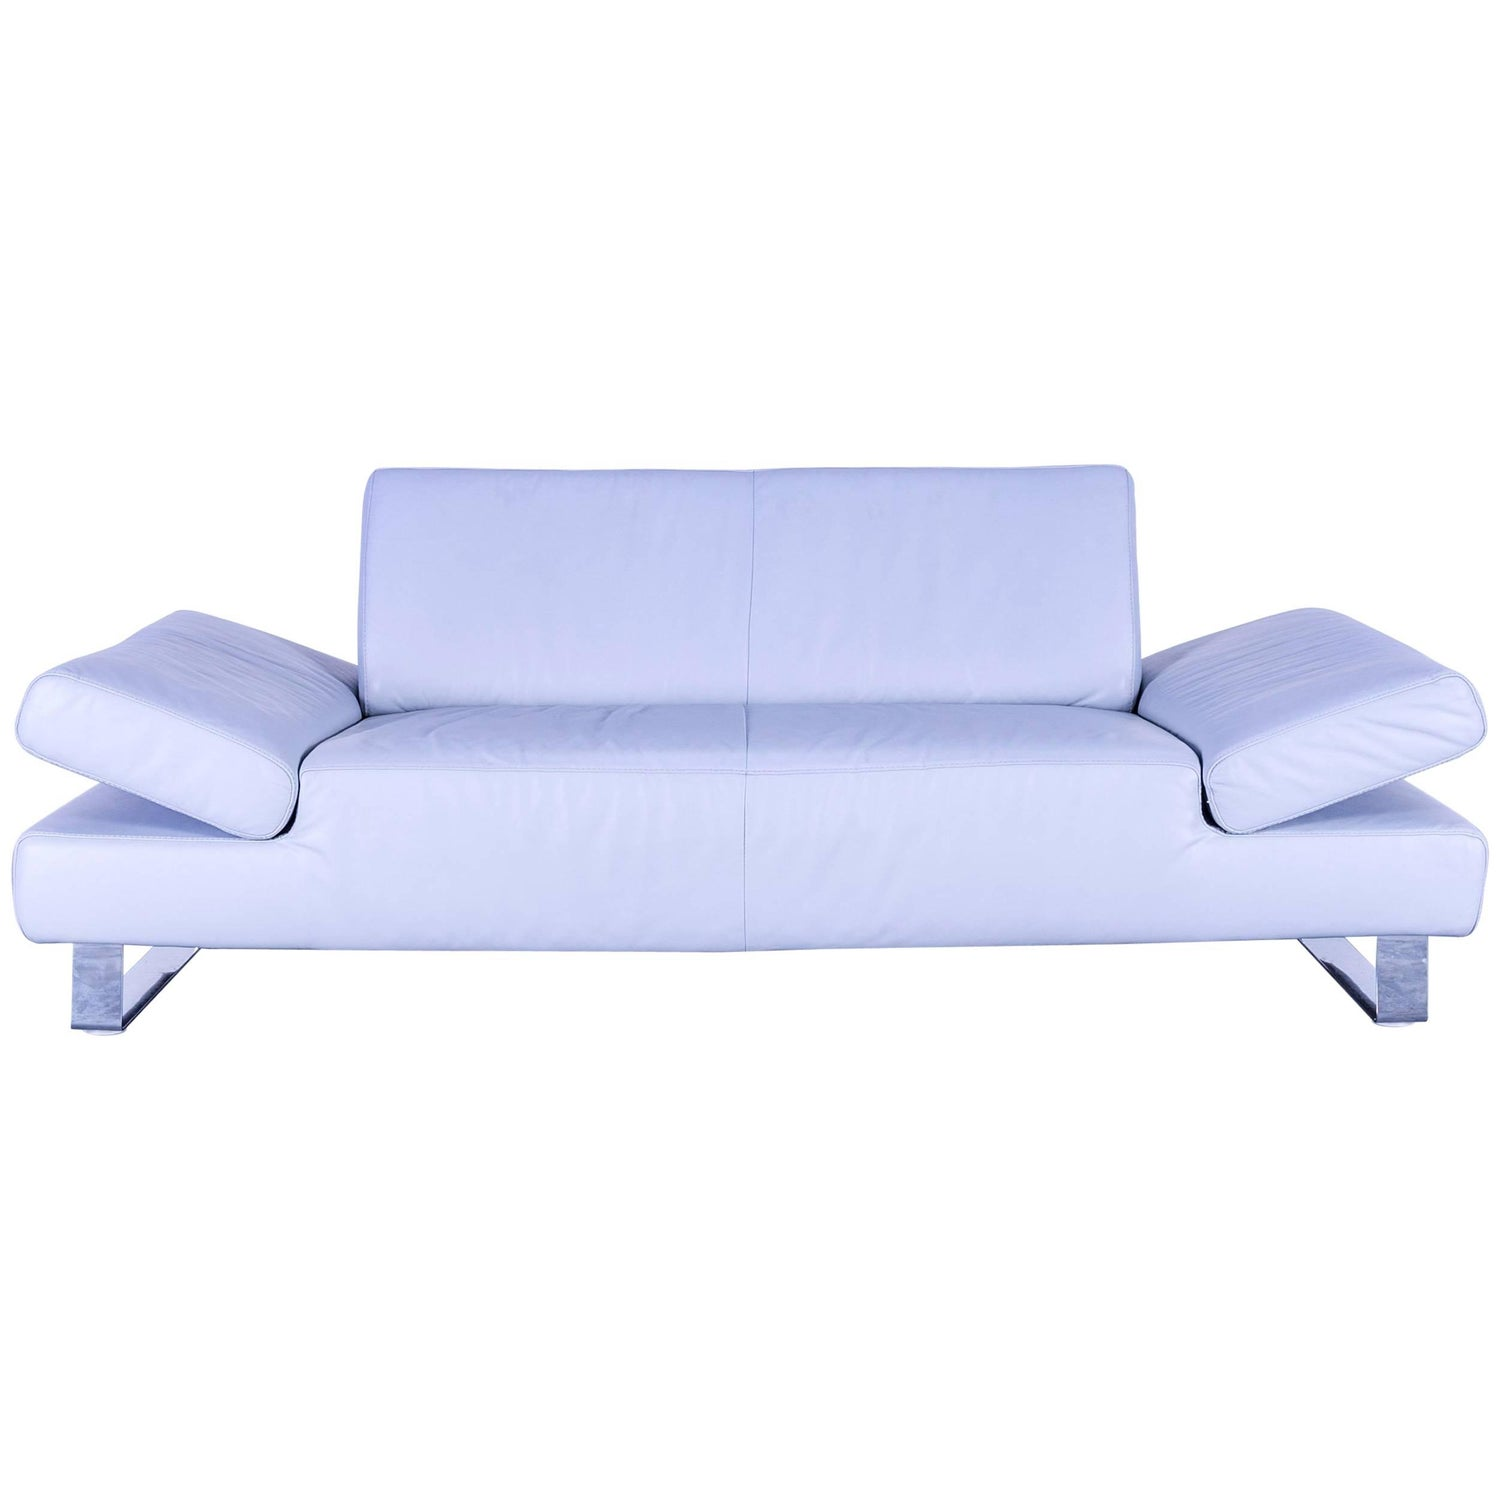 Willi Schillig Designer Sofa Two Seat Blue Leather Couch Modern